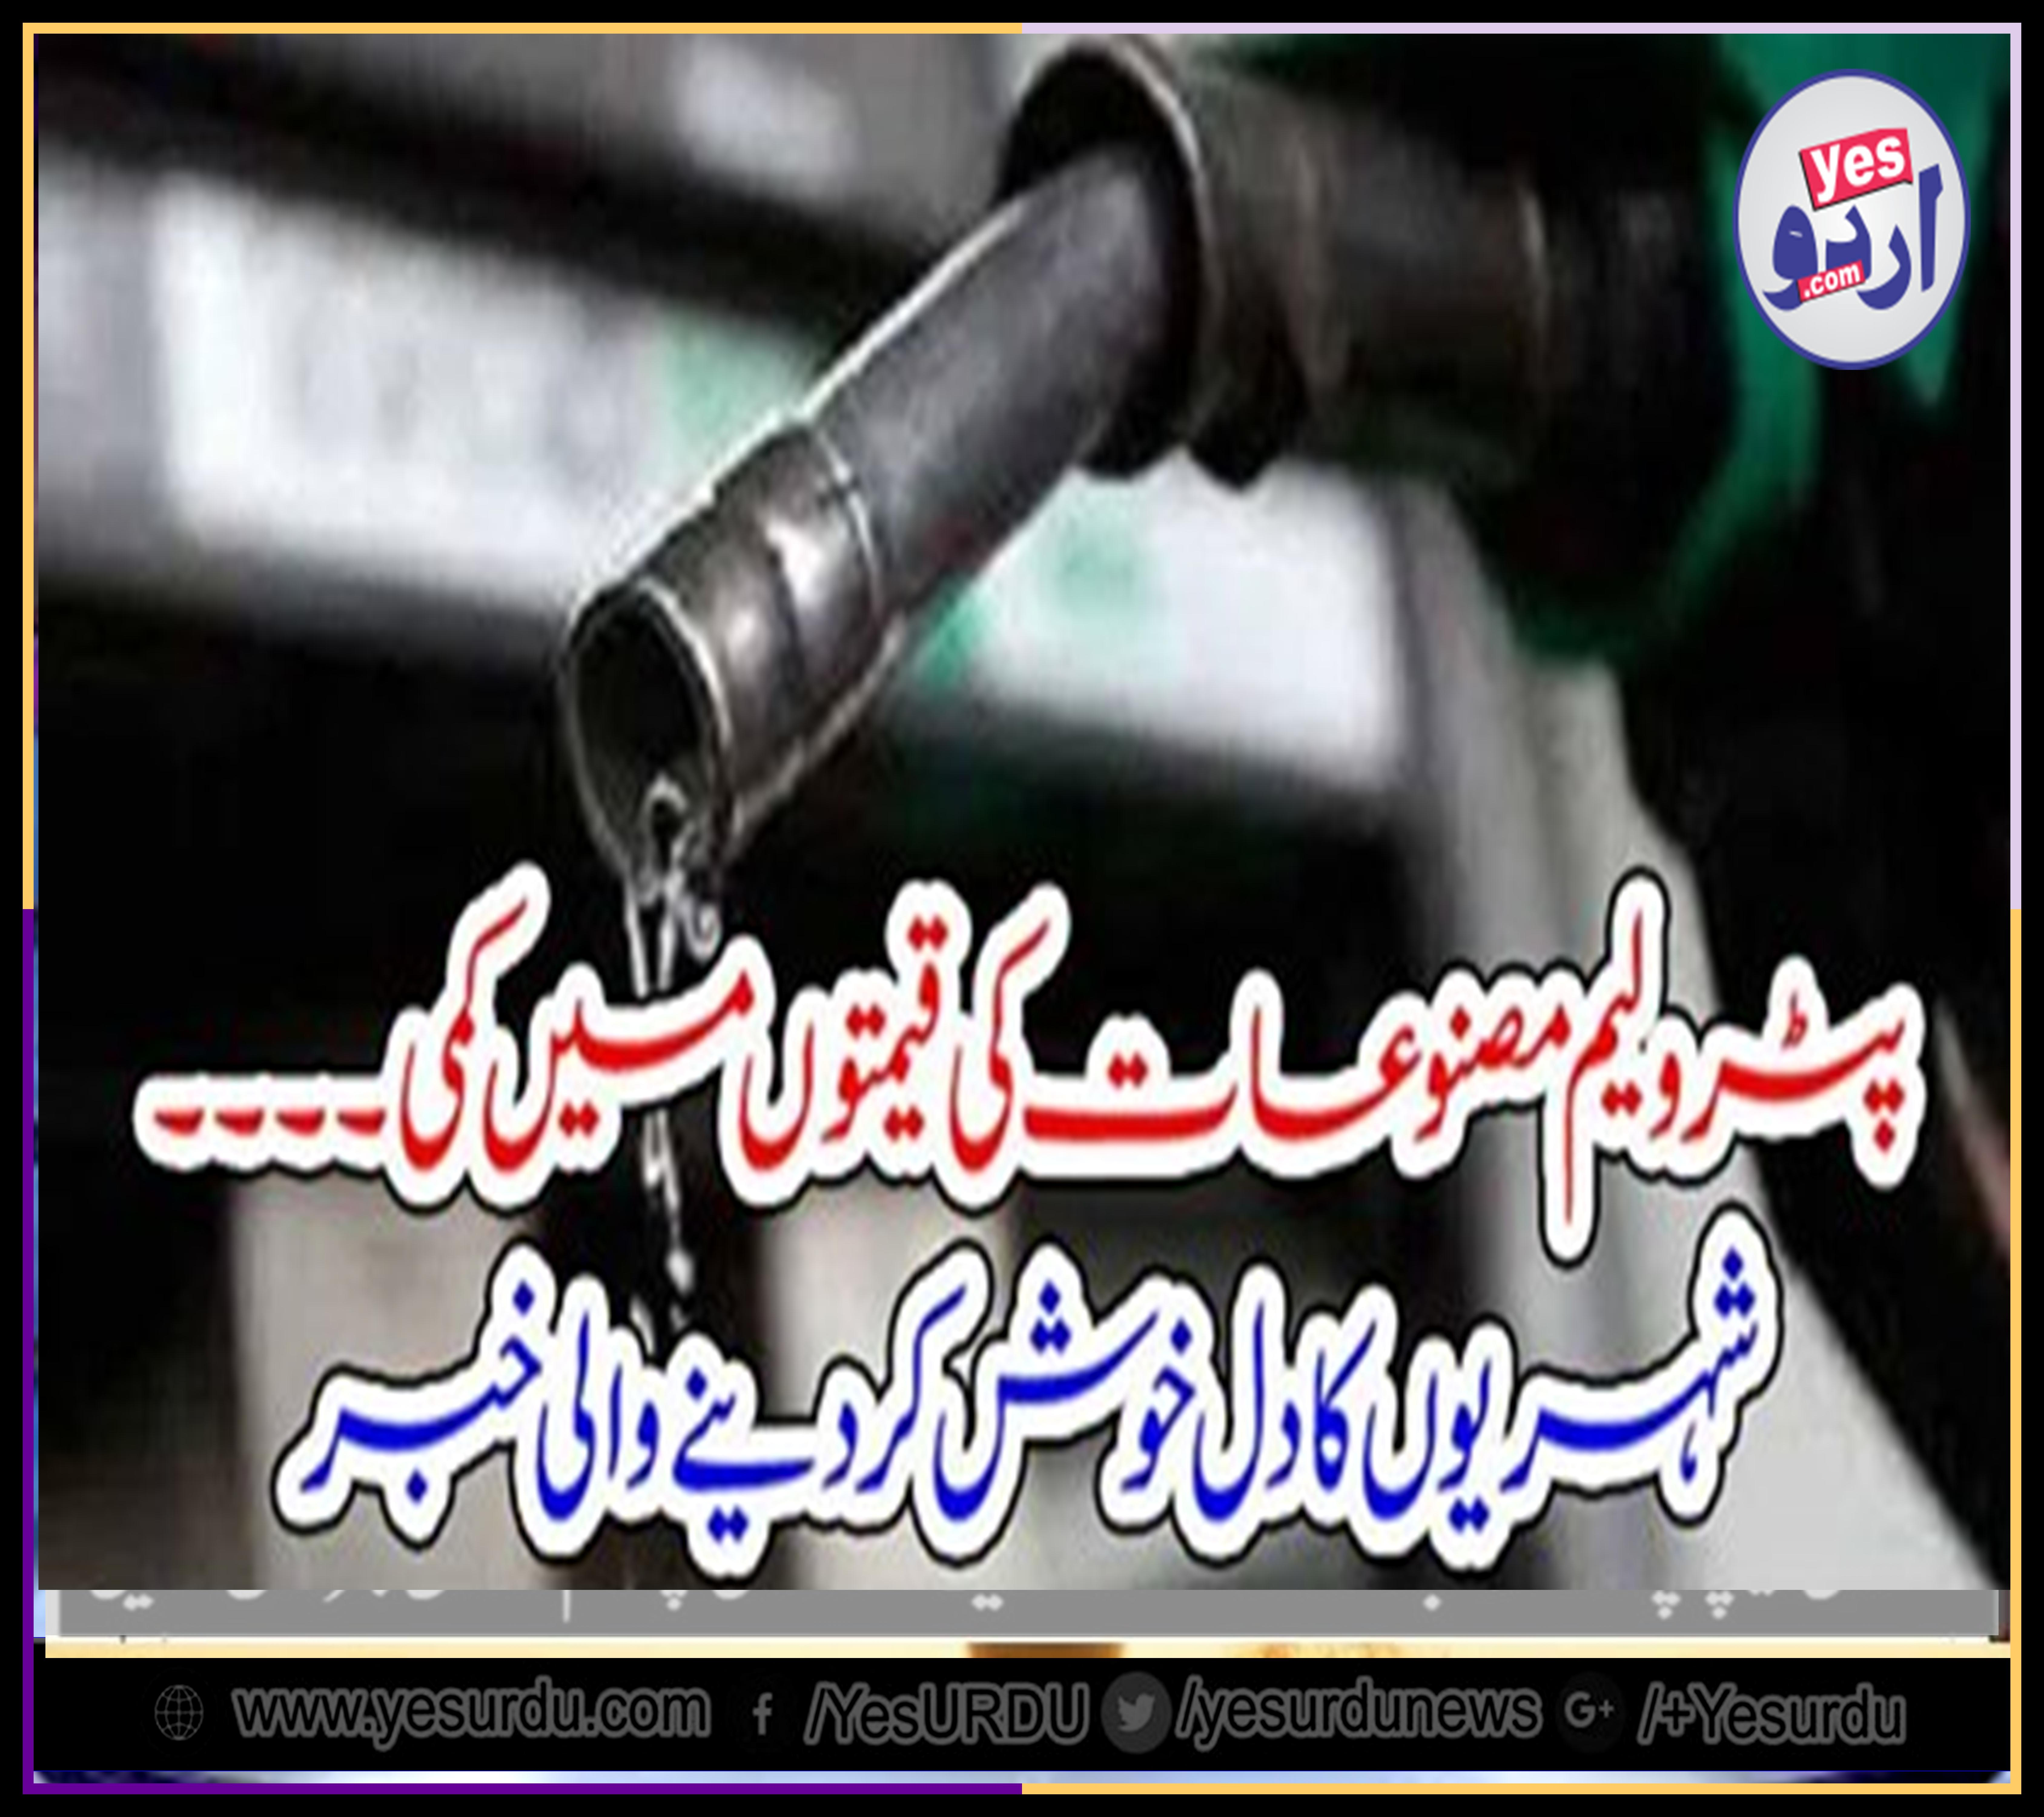 PETROLEUM, PRICES, DECREASED, IN, INTERNATIONAL, MARKET, AND, WILL, BE, ACCORDINGLY, IN, PAKISTAN, ABDUL HAFEEZ SHEIKH